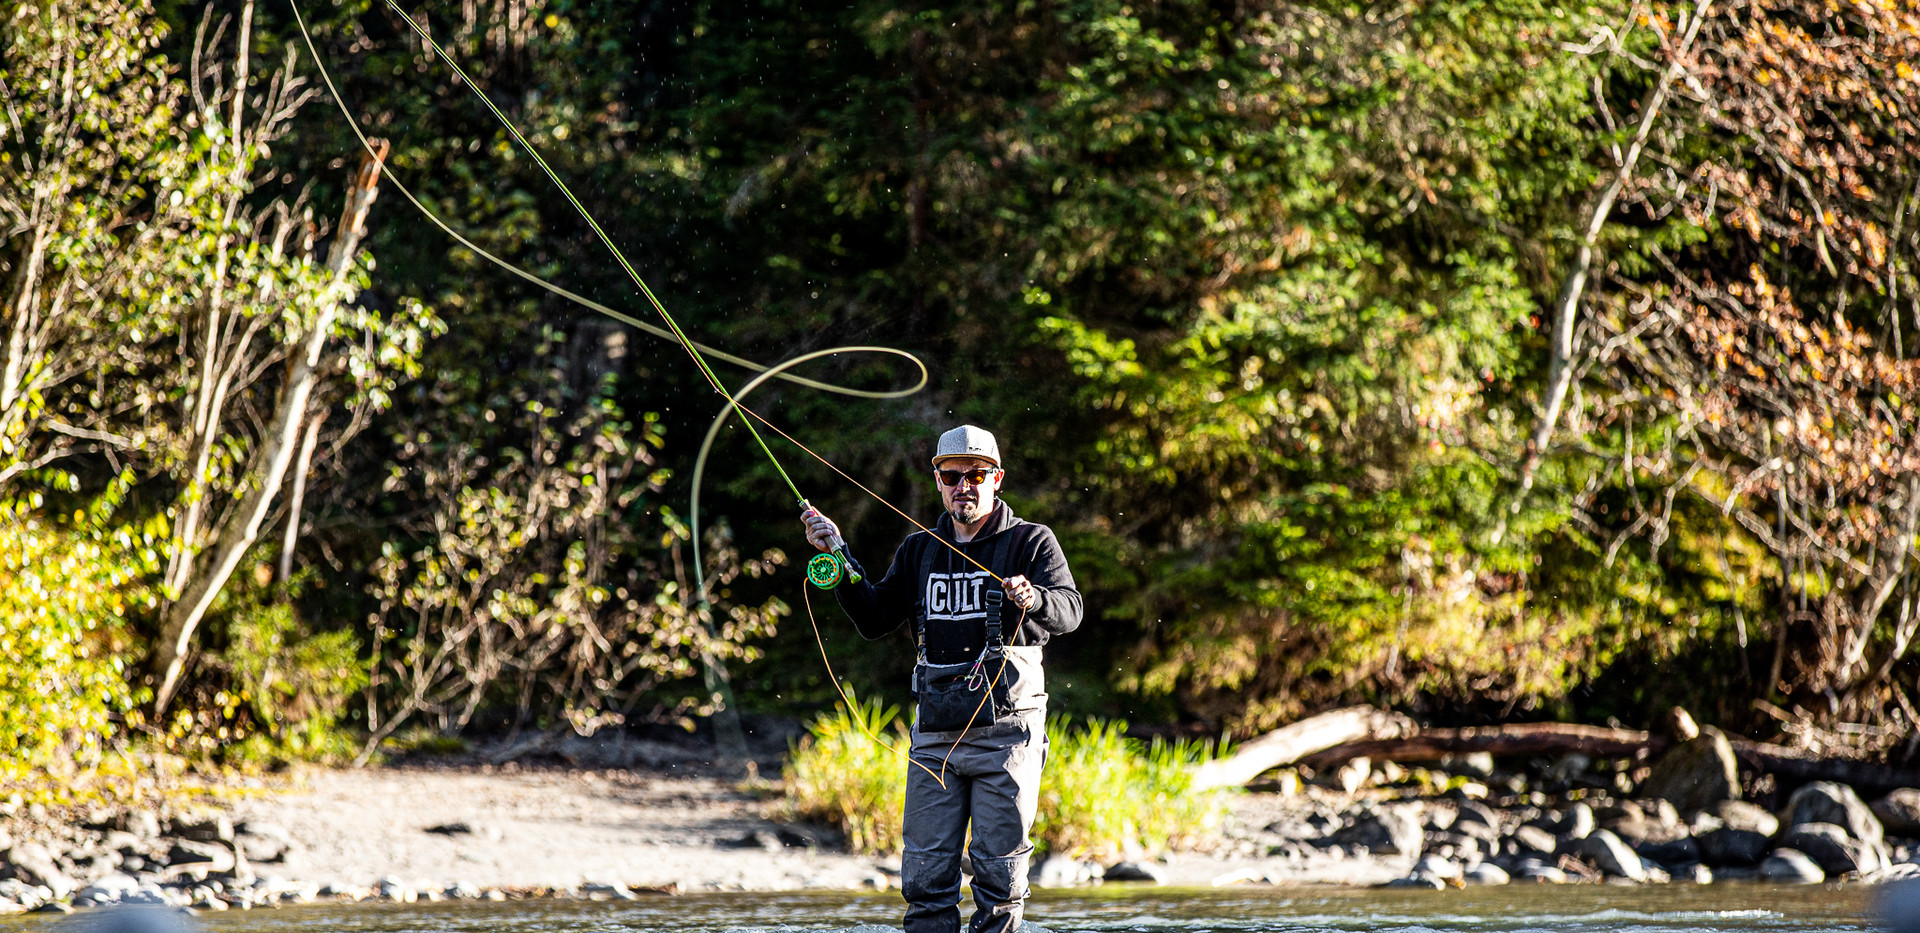 2019_10_1Flyfishing Engadine Fliegenfischen Engadin Guiding Catch and Release Unterengadin fischen Scuol Inn S-charl Renato Vitalini Rutenbau Rodbuilding Custom Fly Rod6__MG_2834.jpg